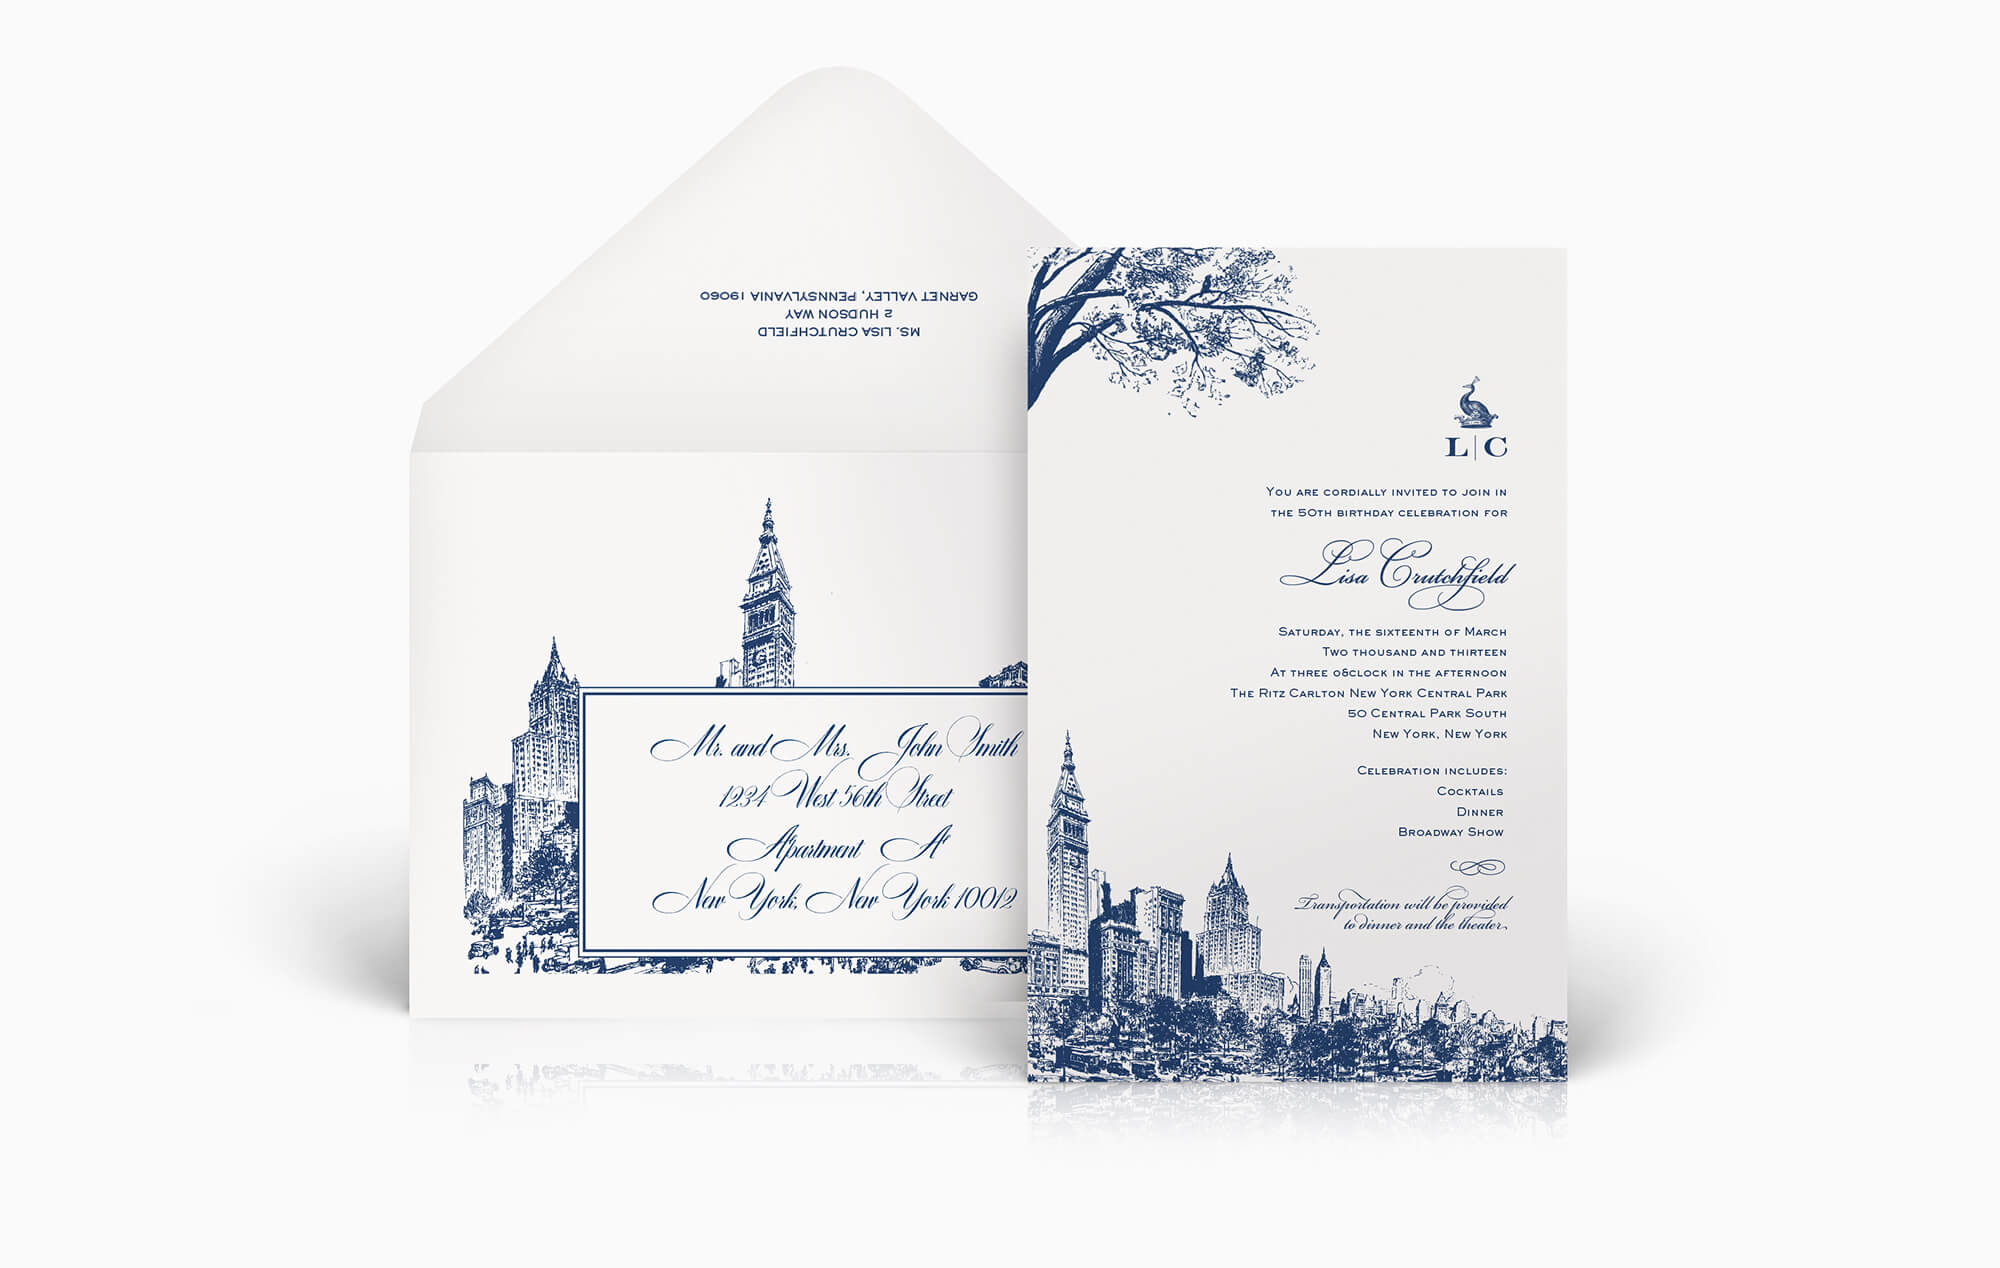 New York inspired invitation and envelope